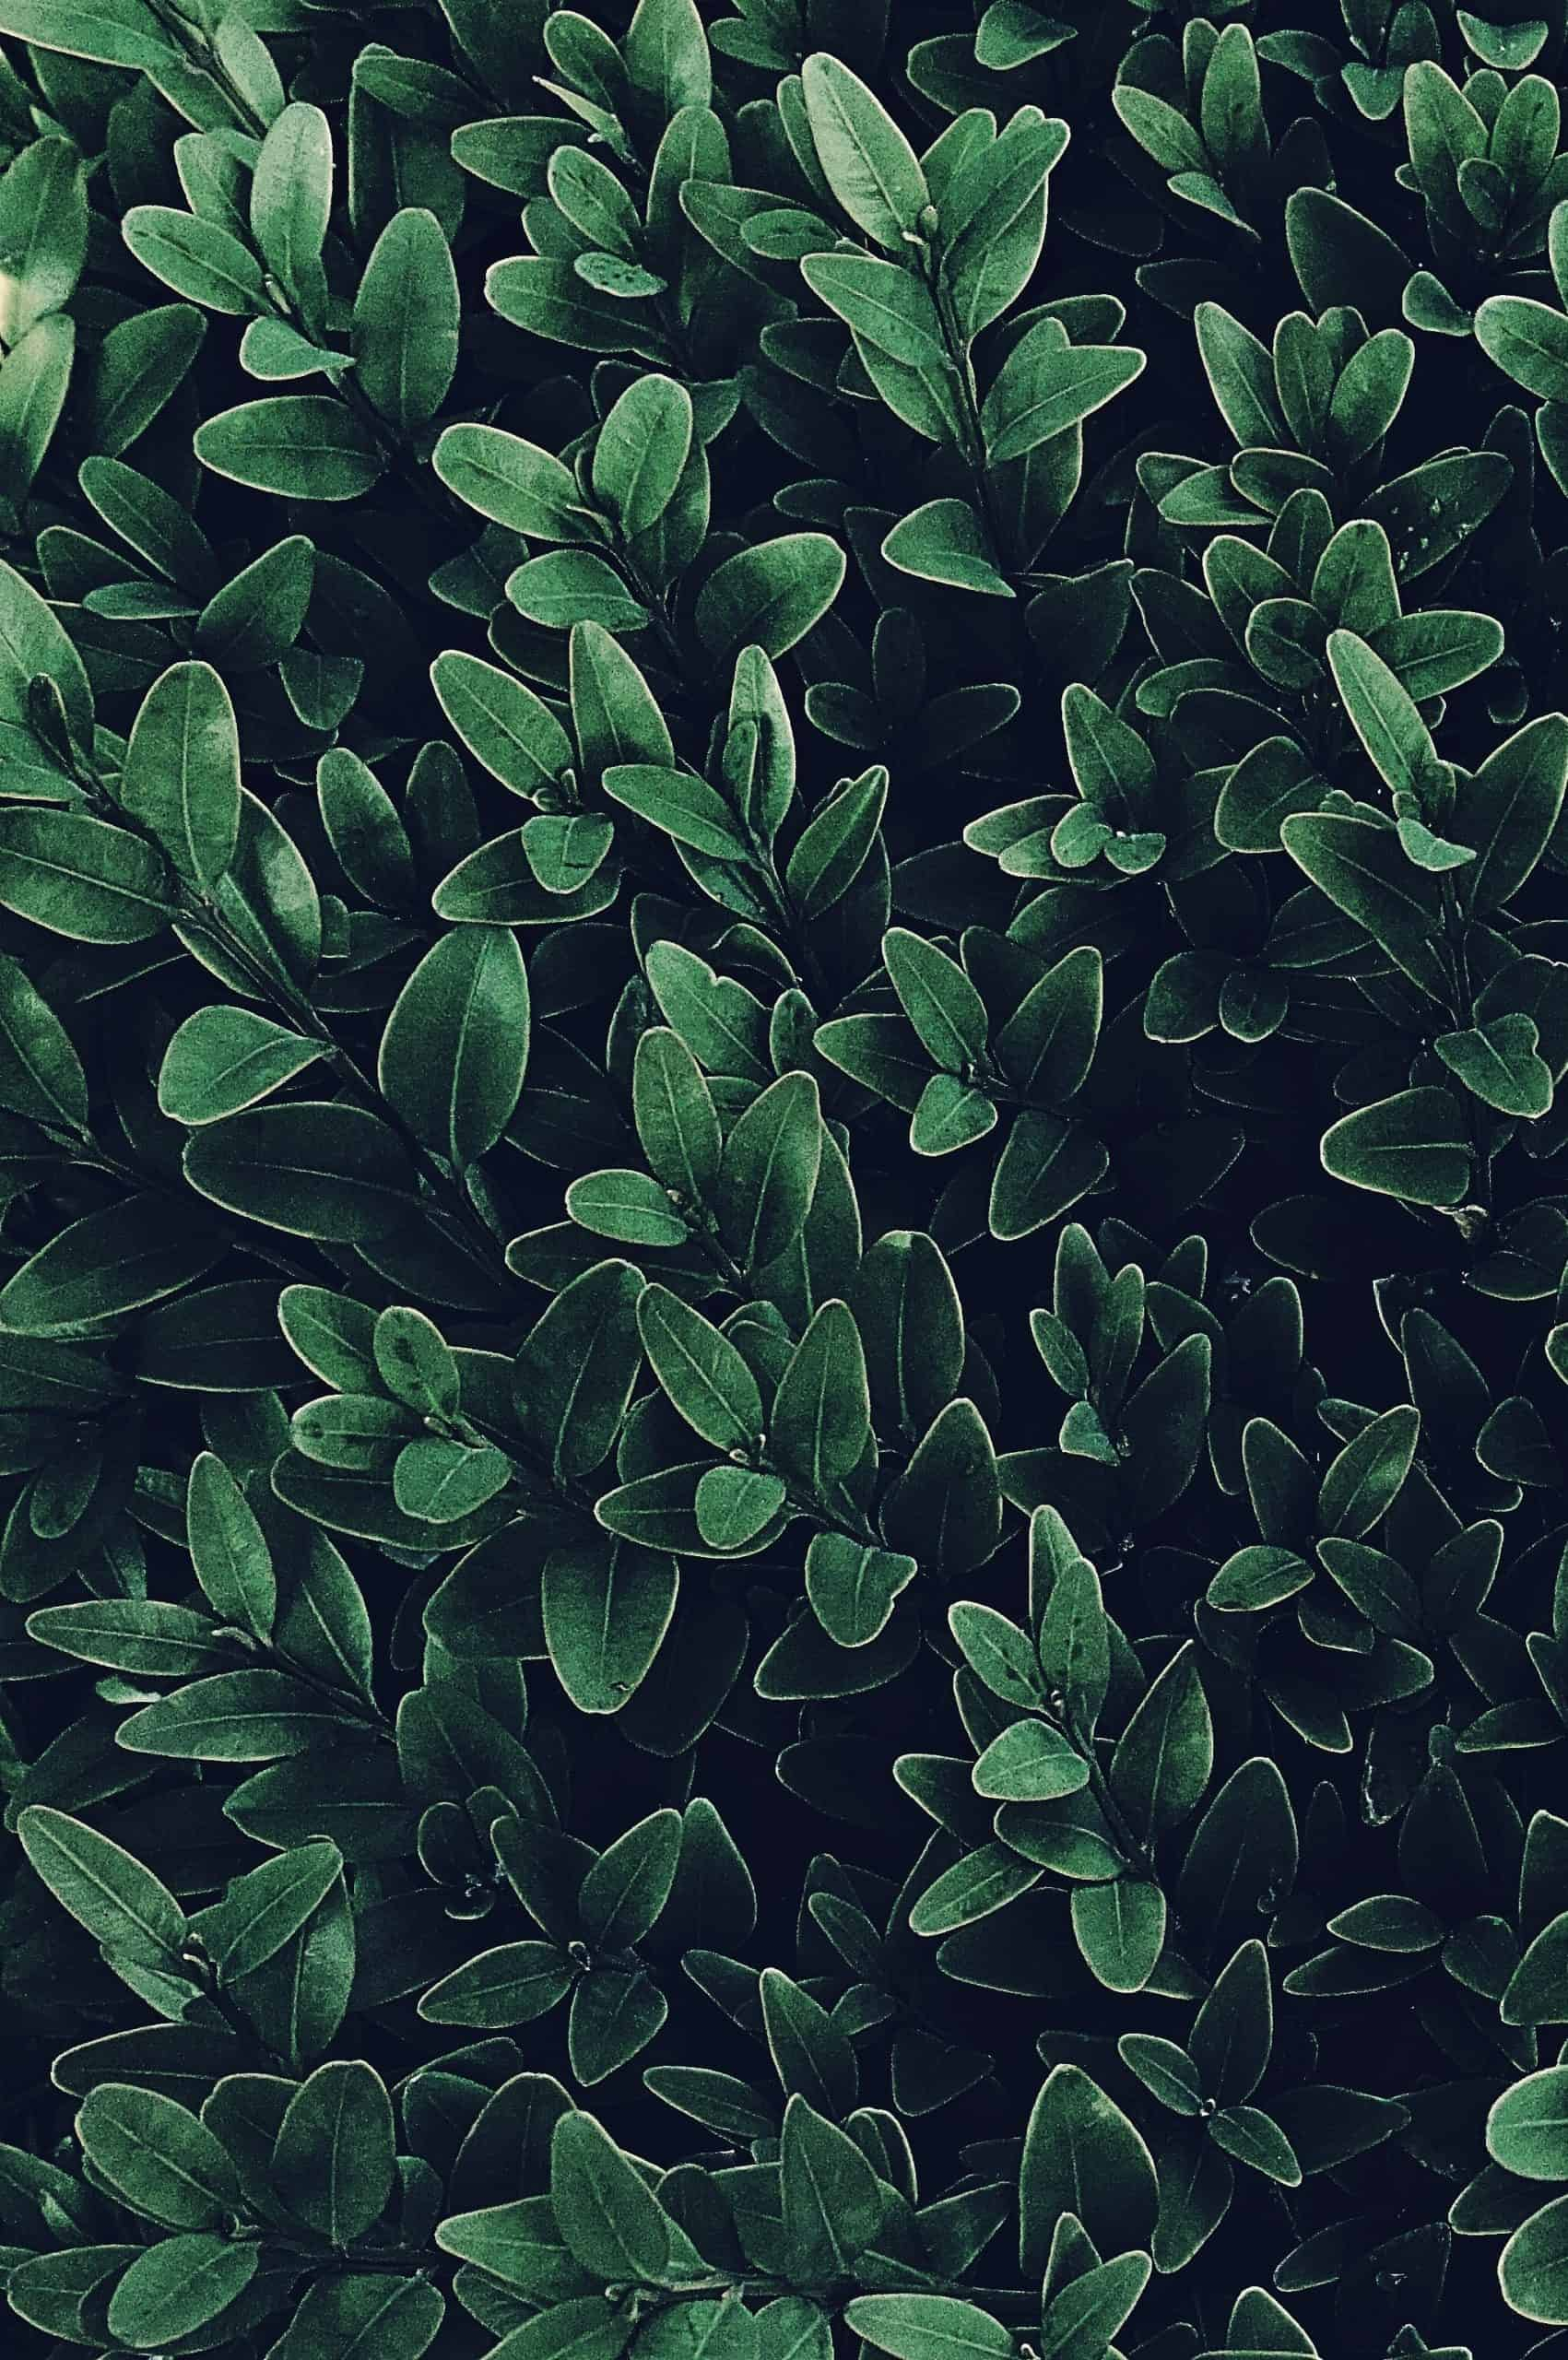 Why Green Plants Are Important For The Environment?